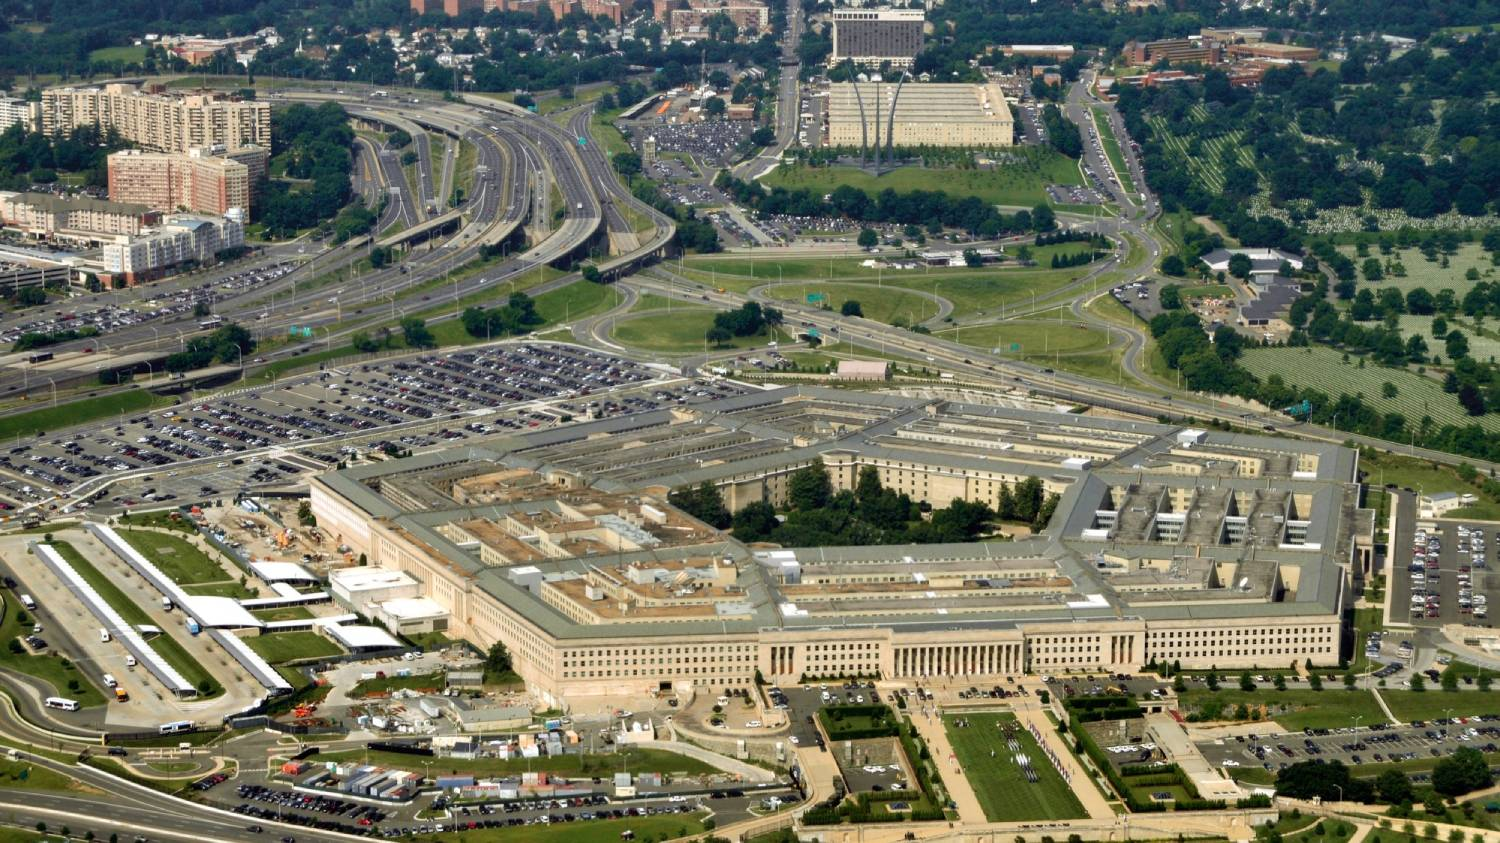 The Pentagon - Things To Do In Washington, D.C.